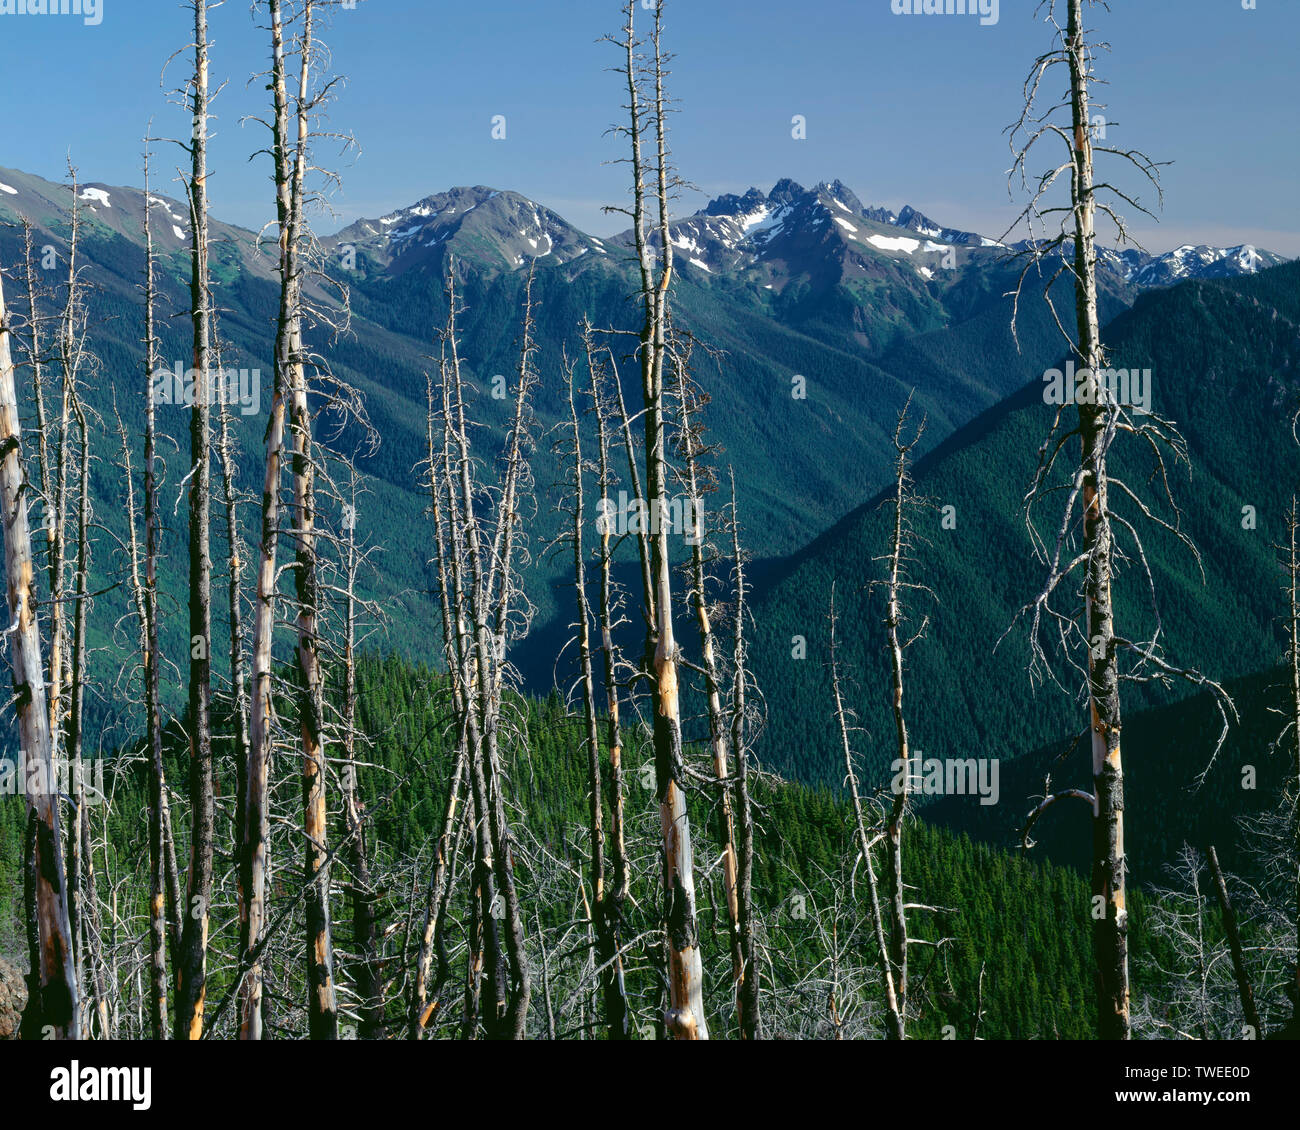 USA, Washington, Olympic National Park, Snags frame distant Mt. Deception (center right) which rises above forested ridges and valleys; from Deer Park - Stock Image